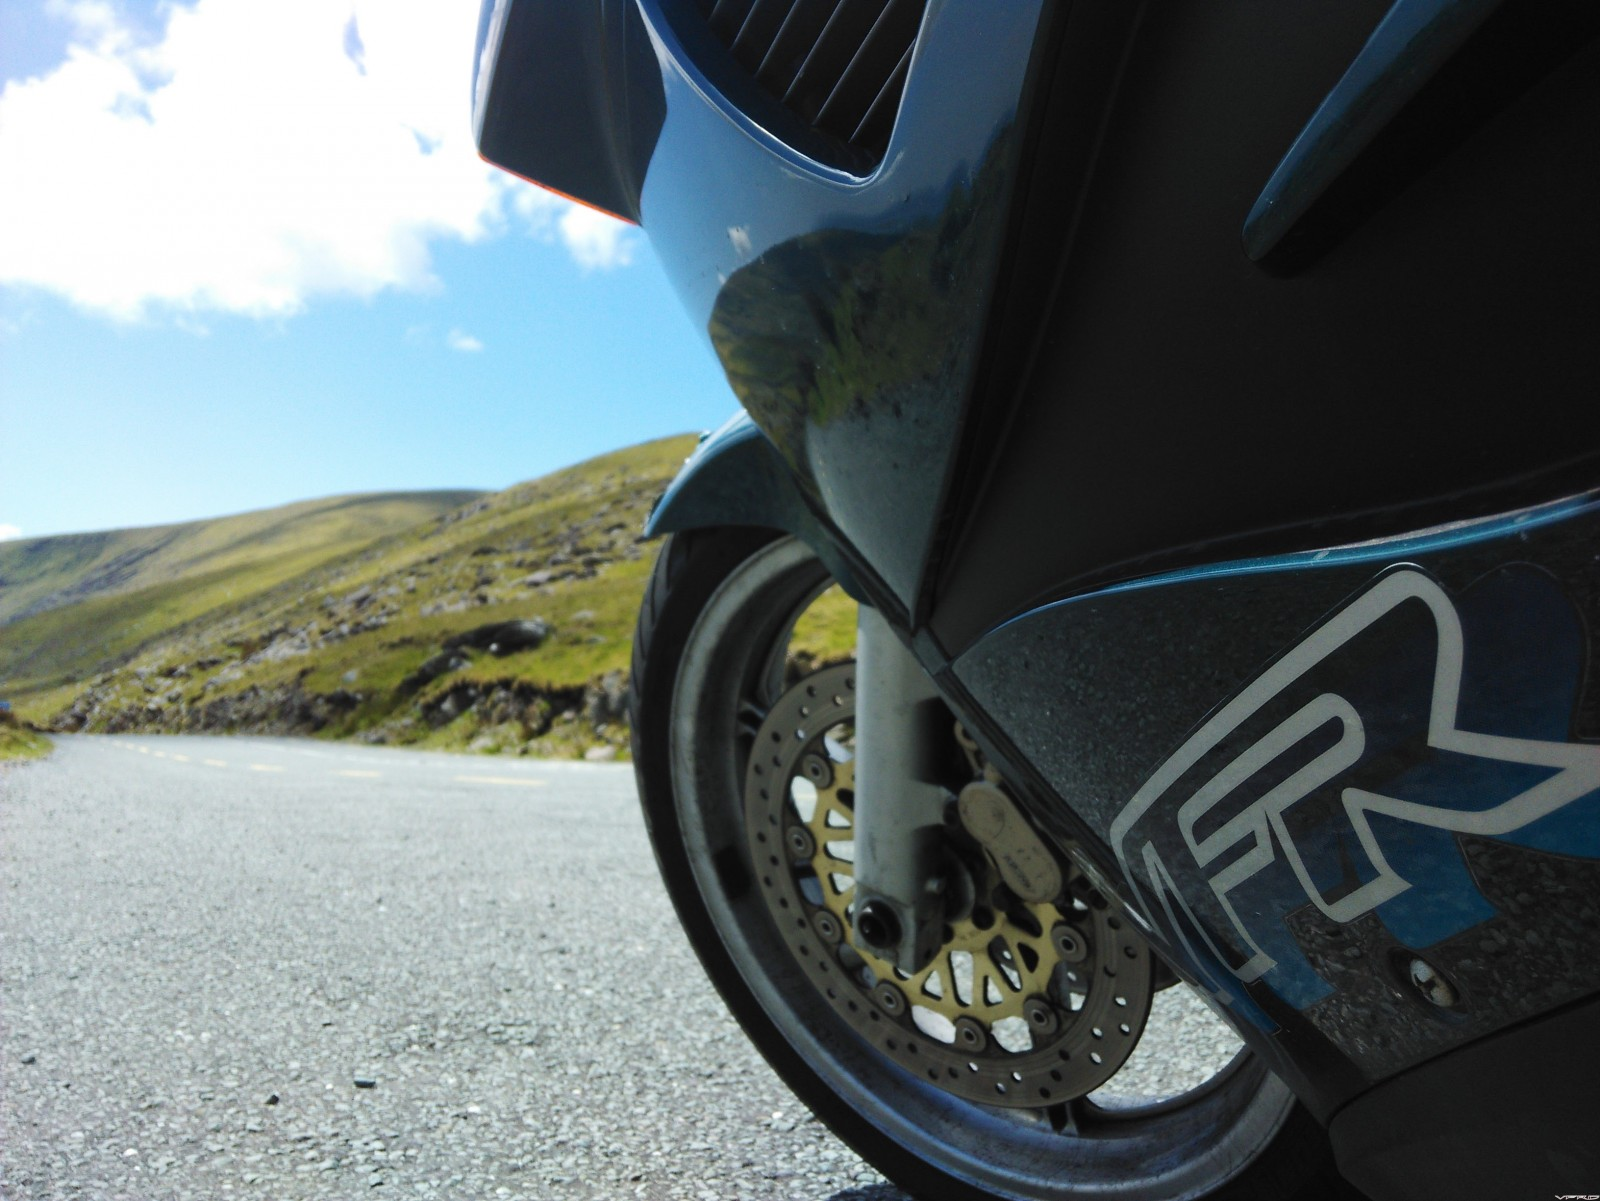 On the Conor Pass